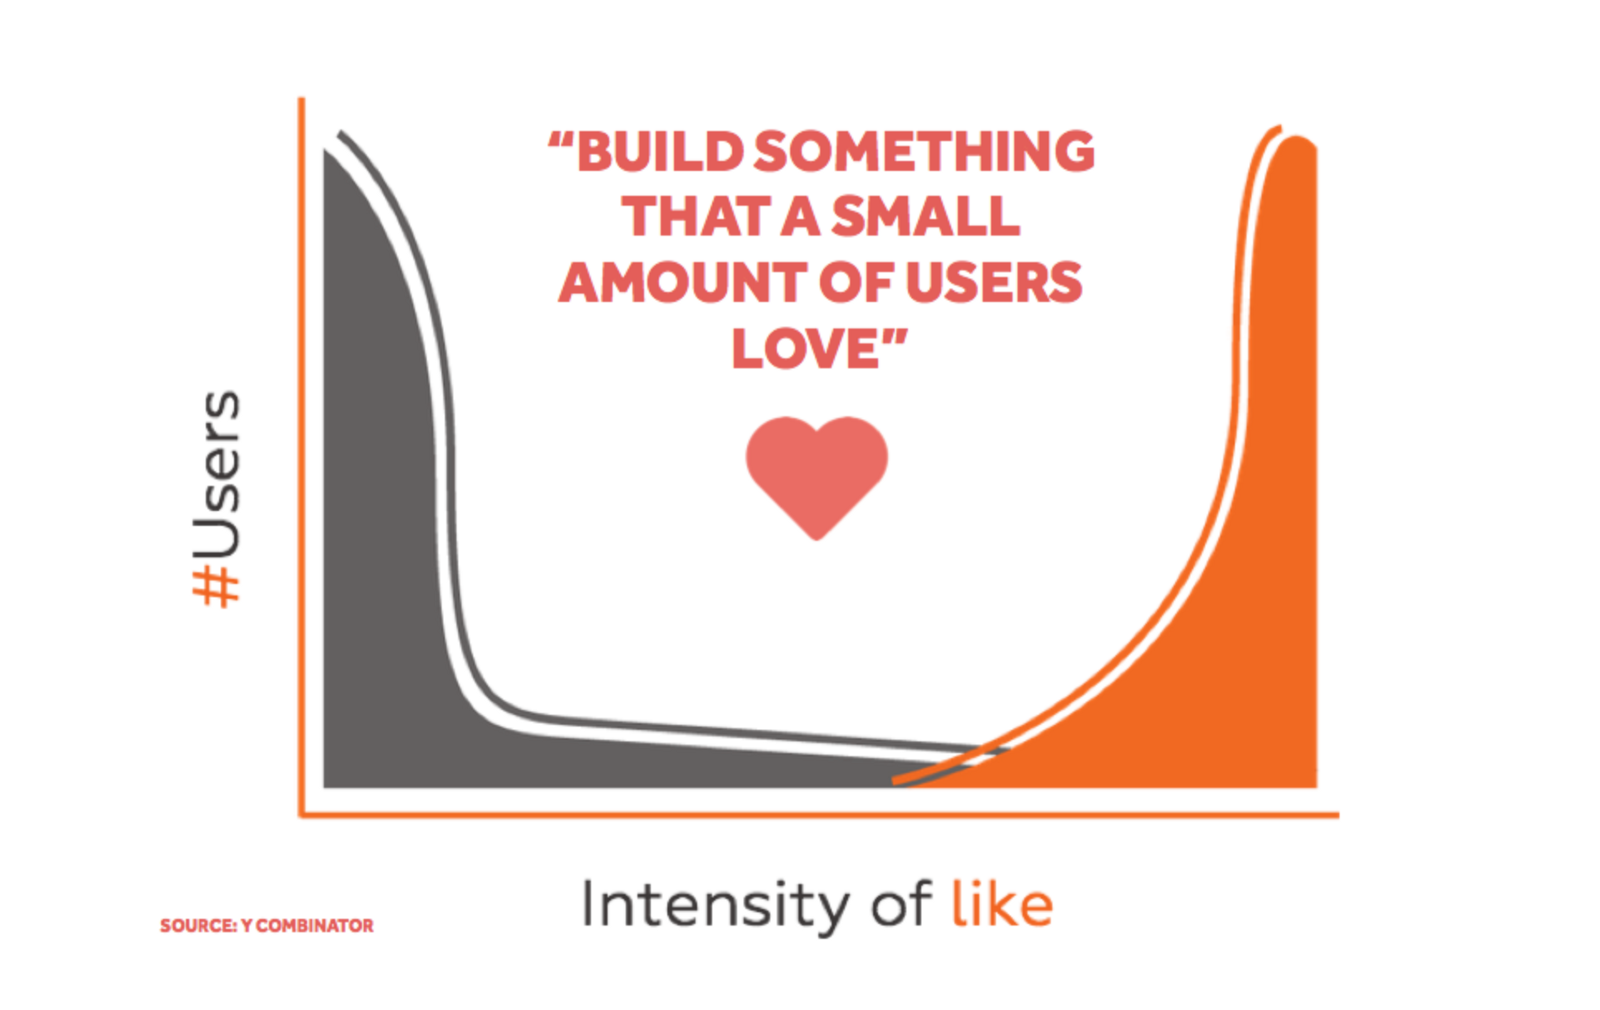 Build an IoT product that a small amount of users love